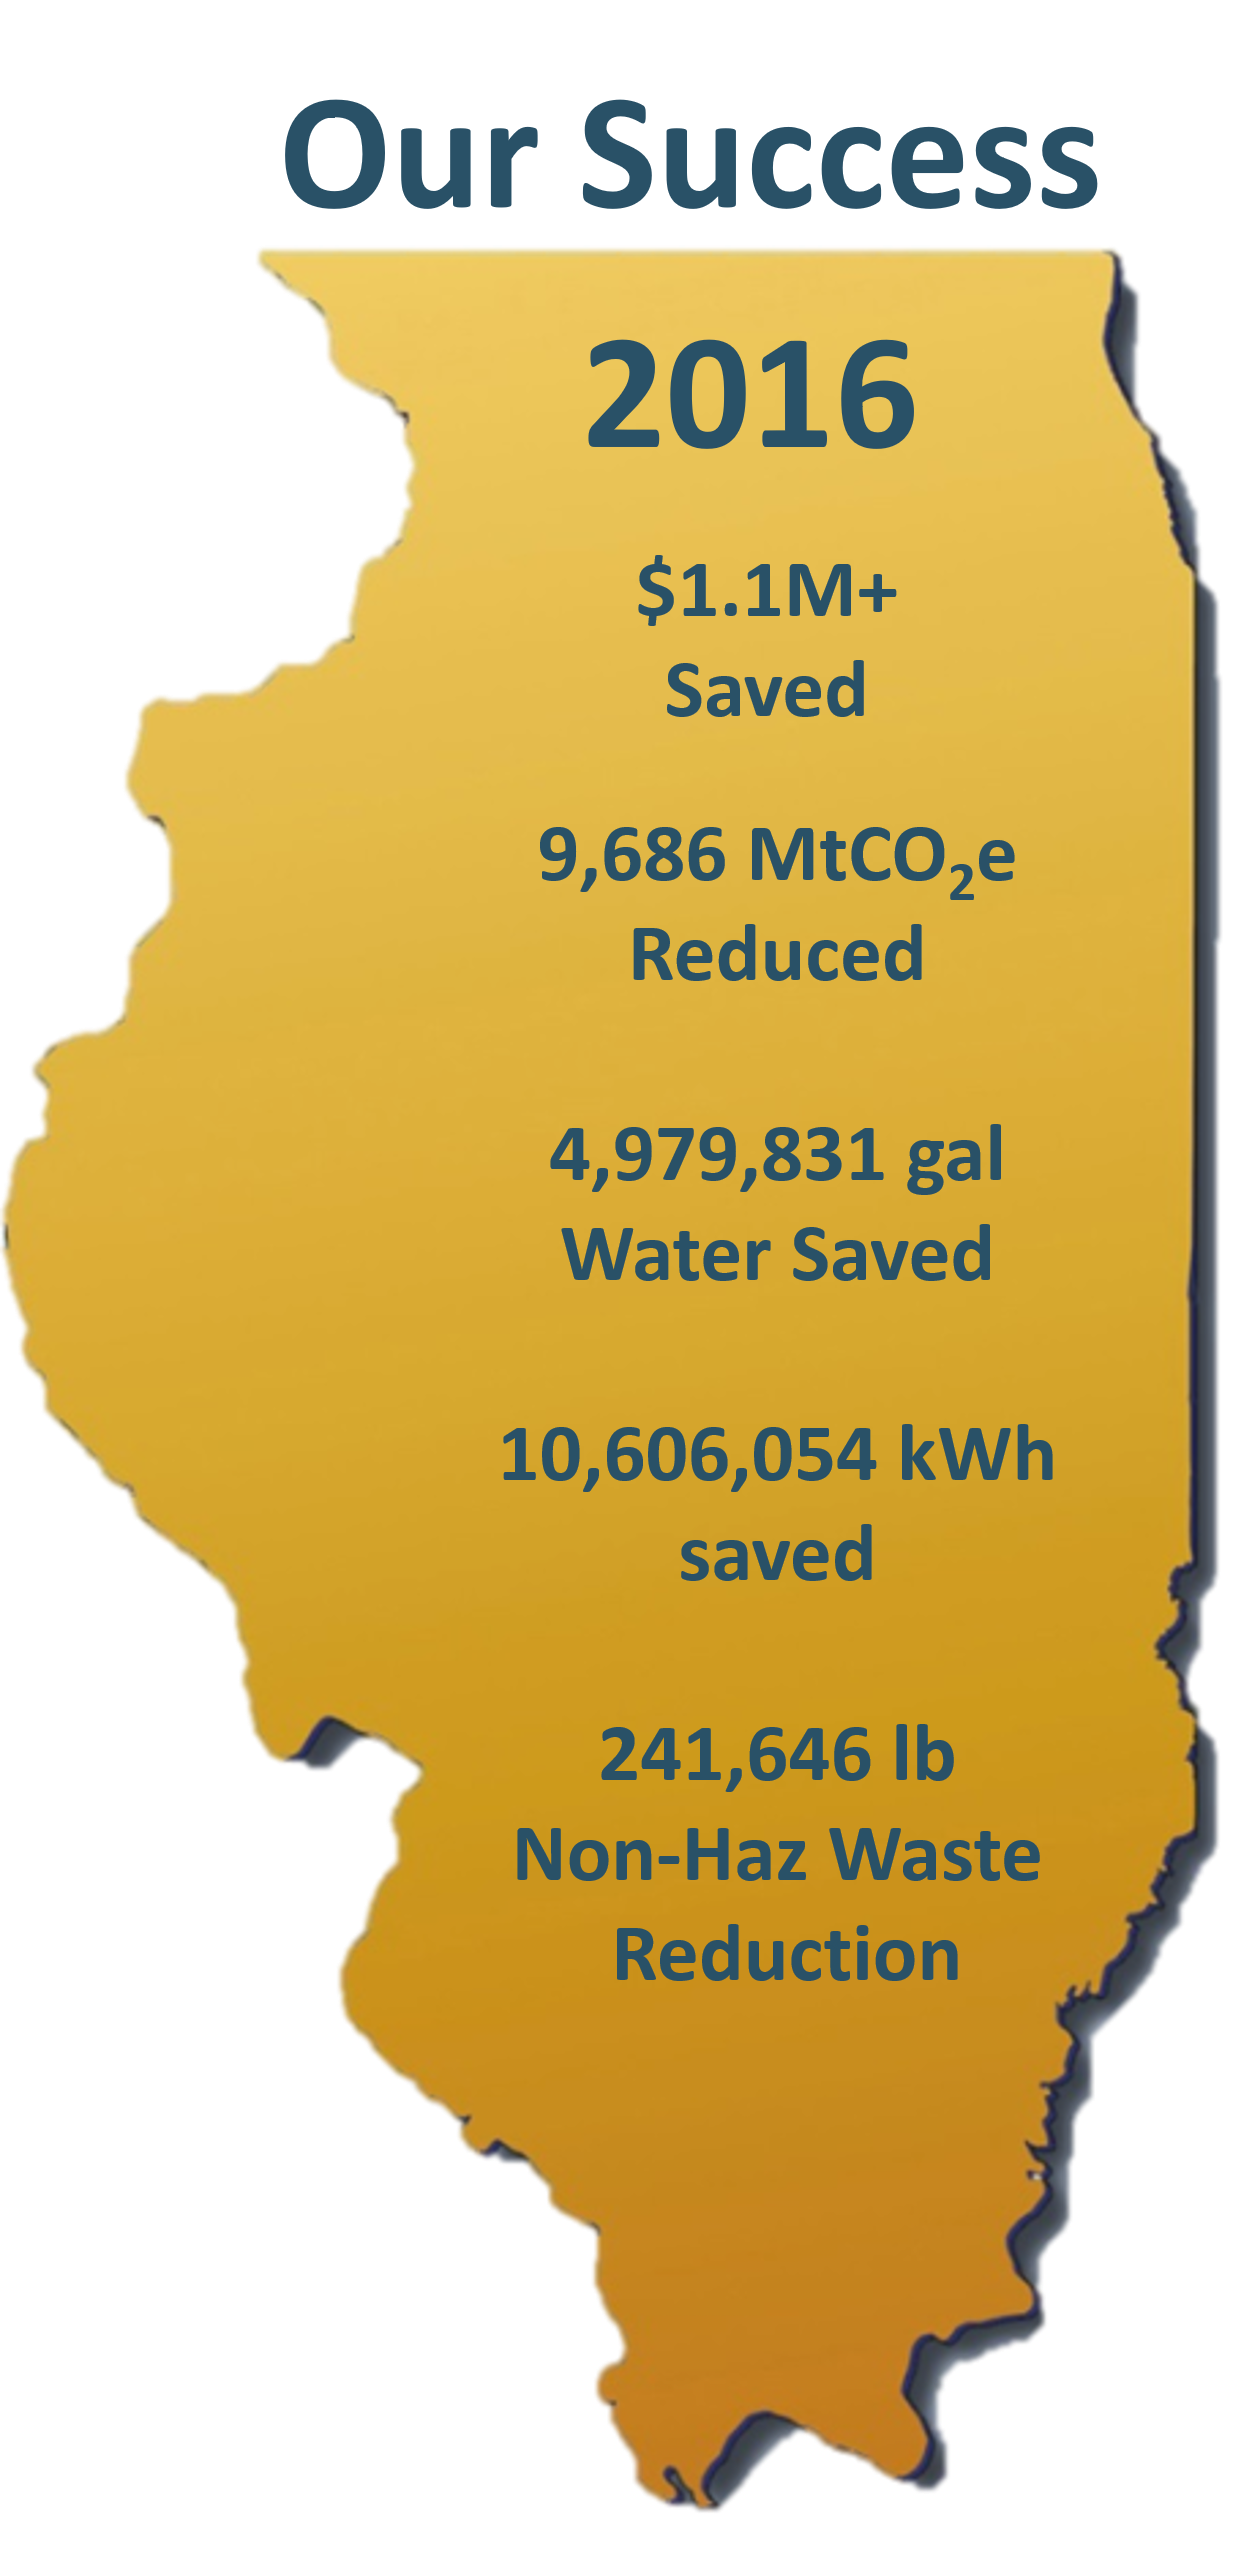 2016: over 1.1 million dollars saved, 9c686 million tons carbon dioxide equivalents reduced, 4,979,831 gallons water saved, 10,606,054 kilowatts saved, 241,646 pounds non-hazardous waste reduced